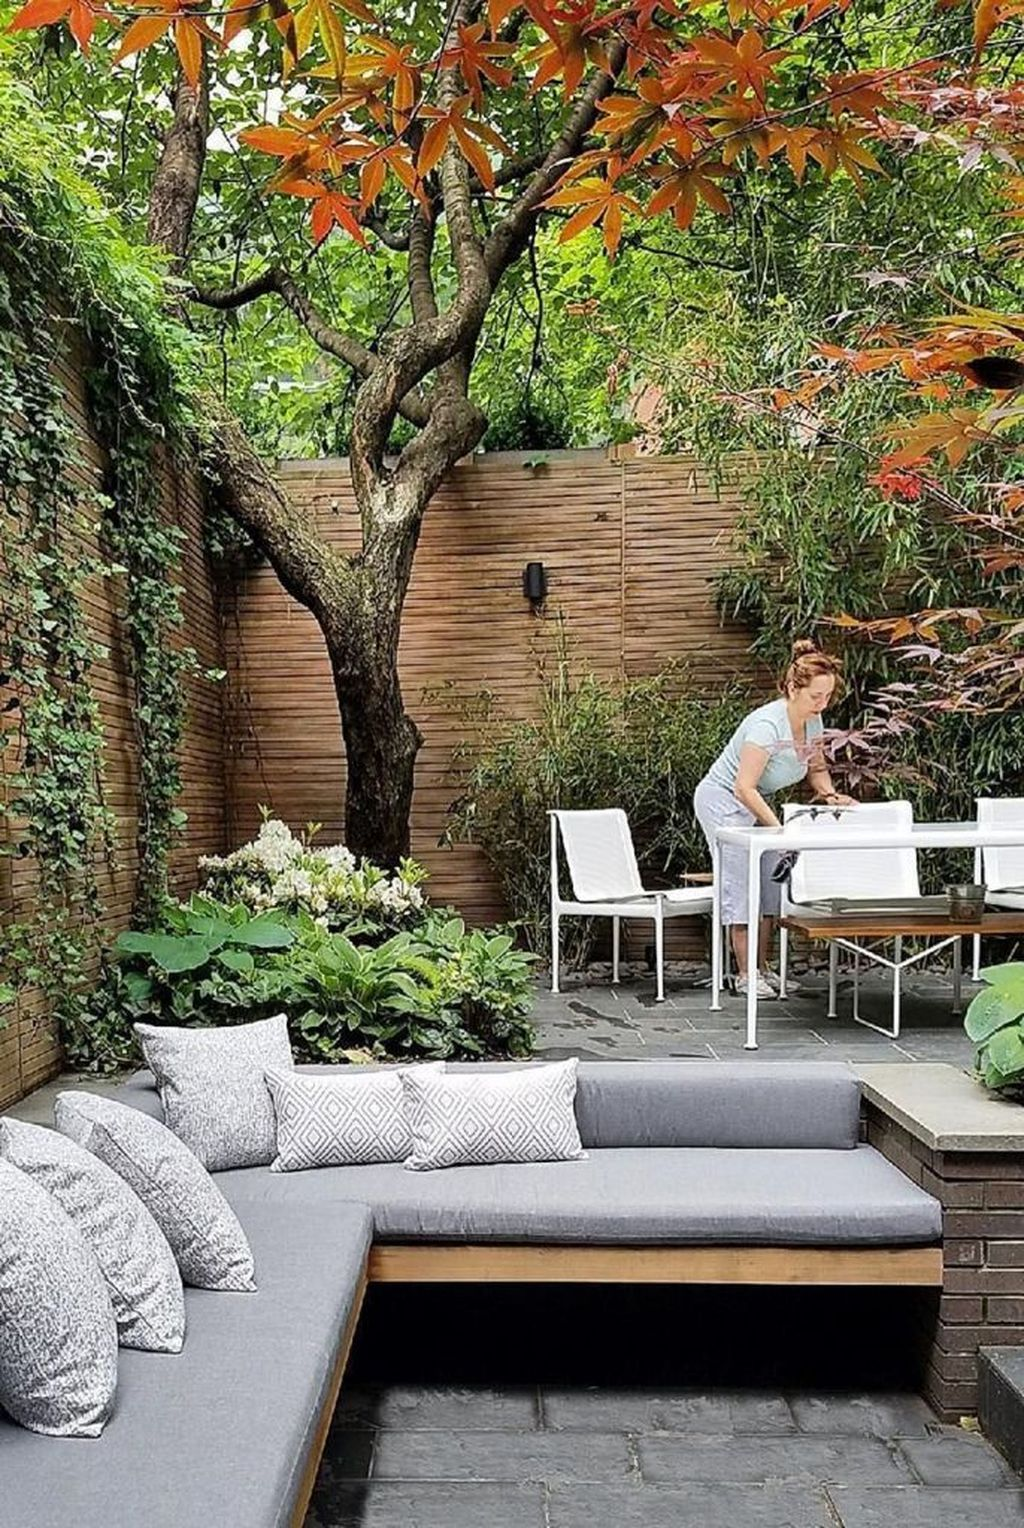 20 Awesome Small Backyard Design Ideas That Will Make Your ...